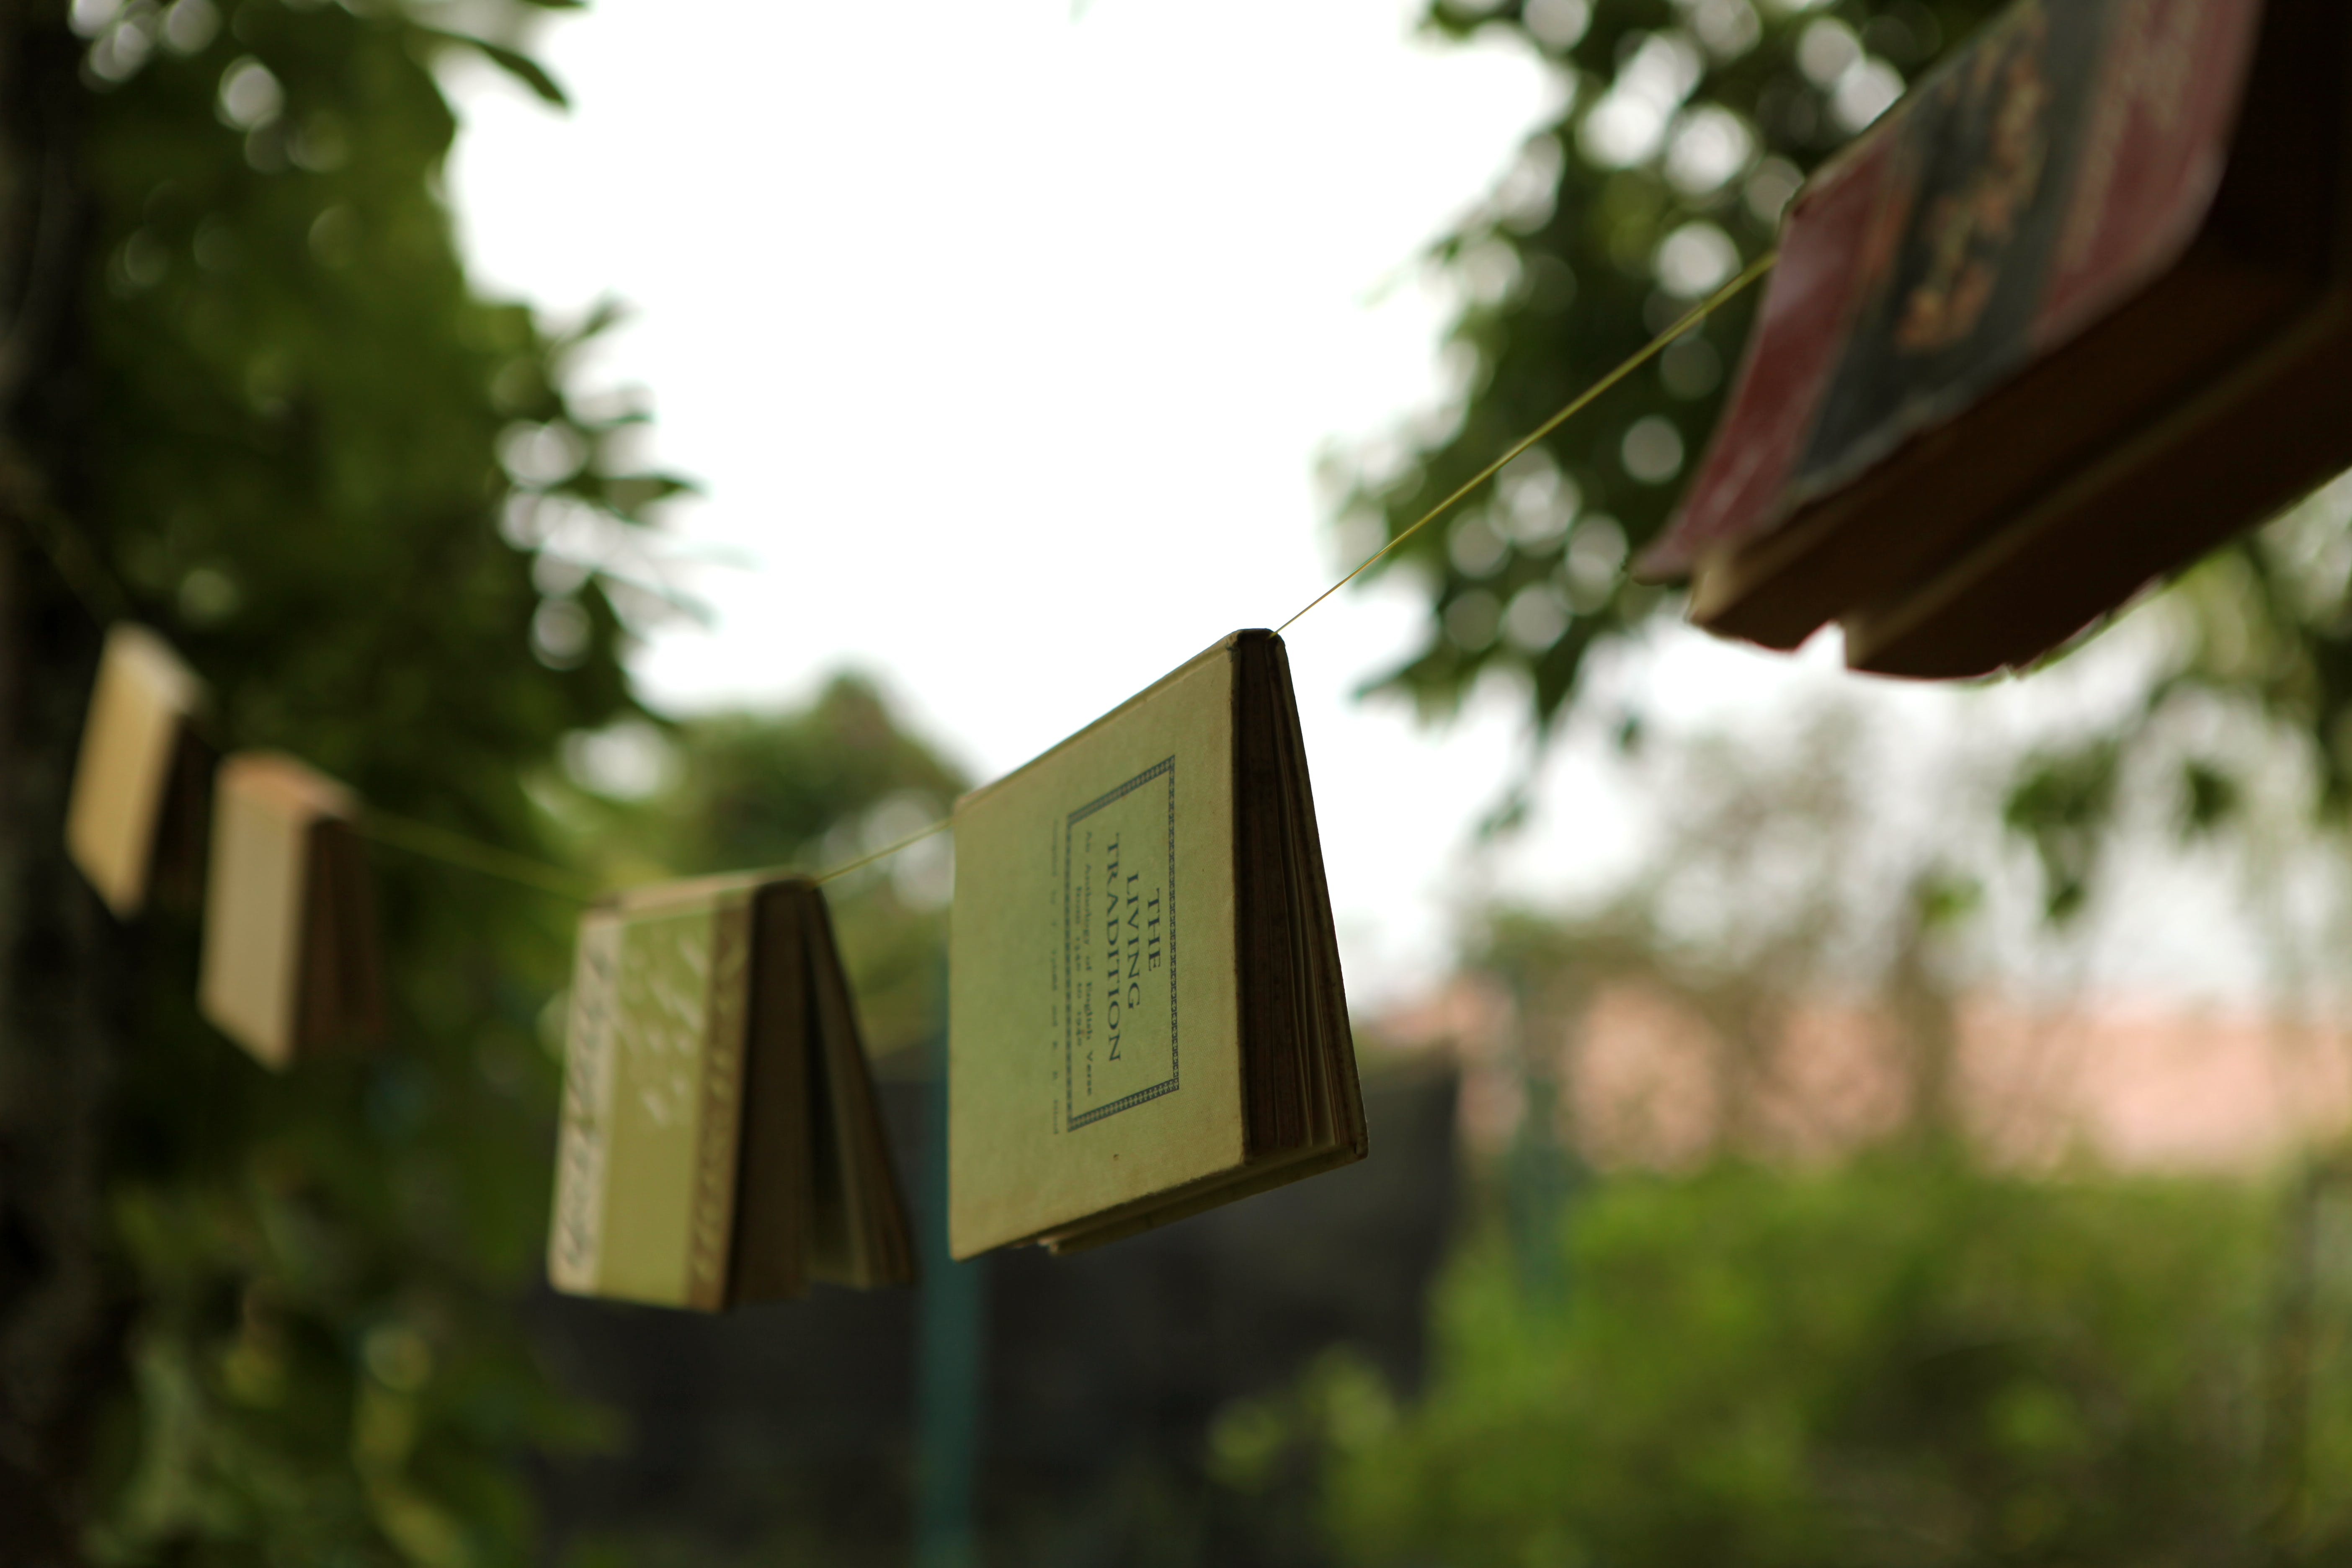 Close-Up Photo of Book Hanging On Clothes Line